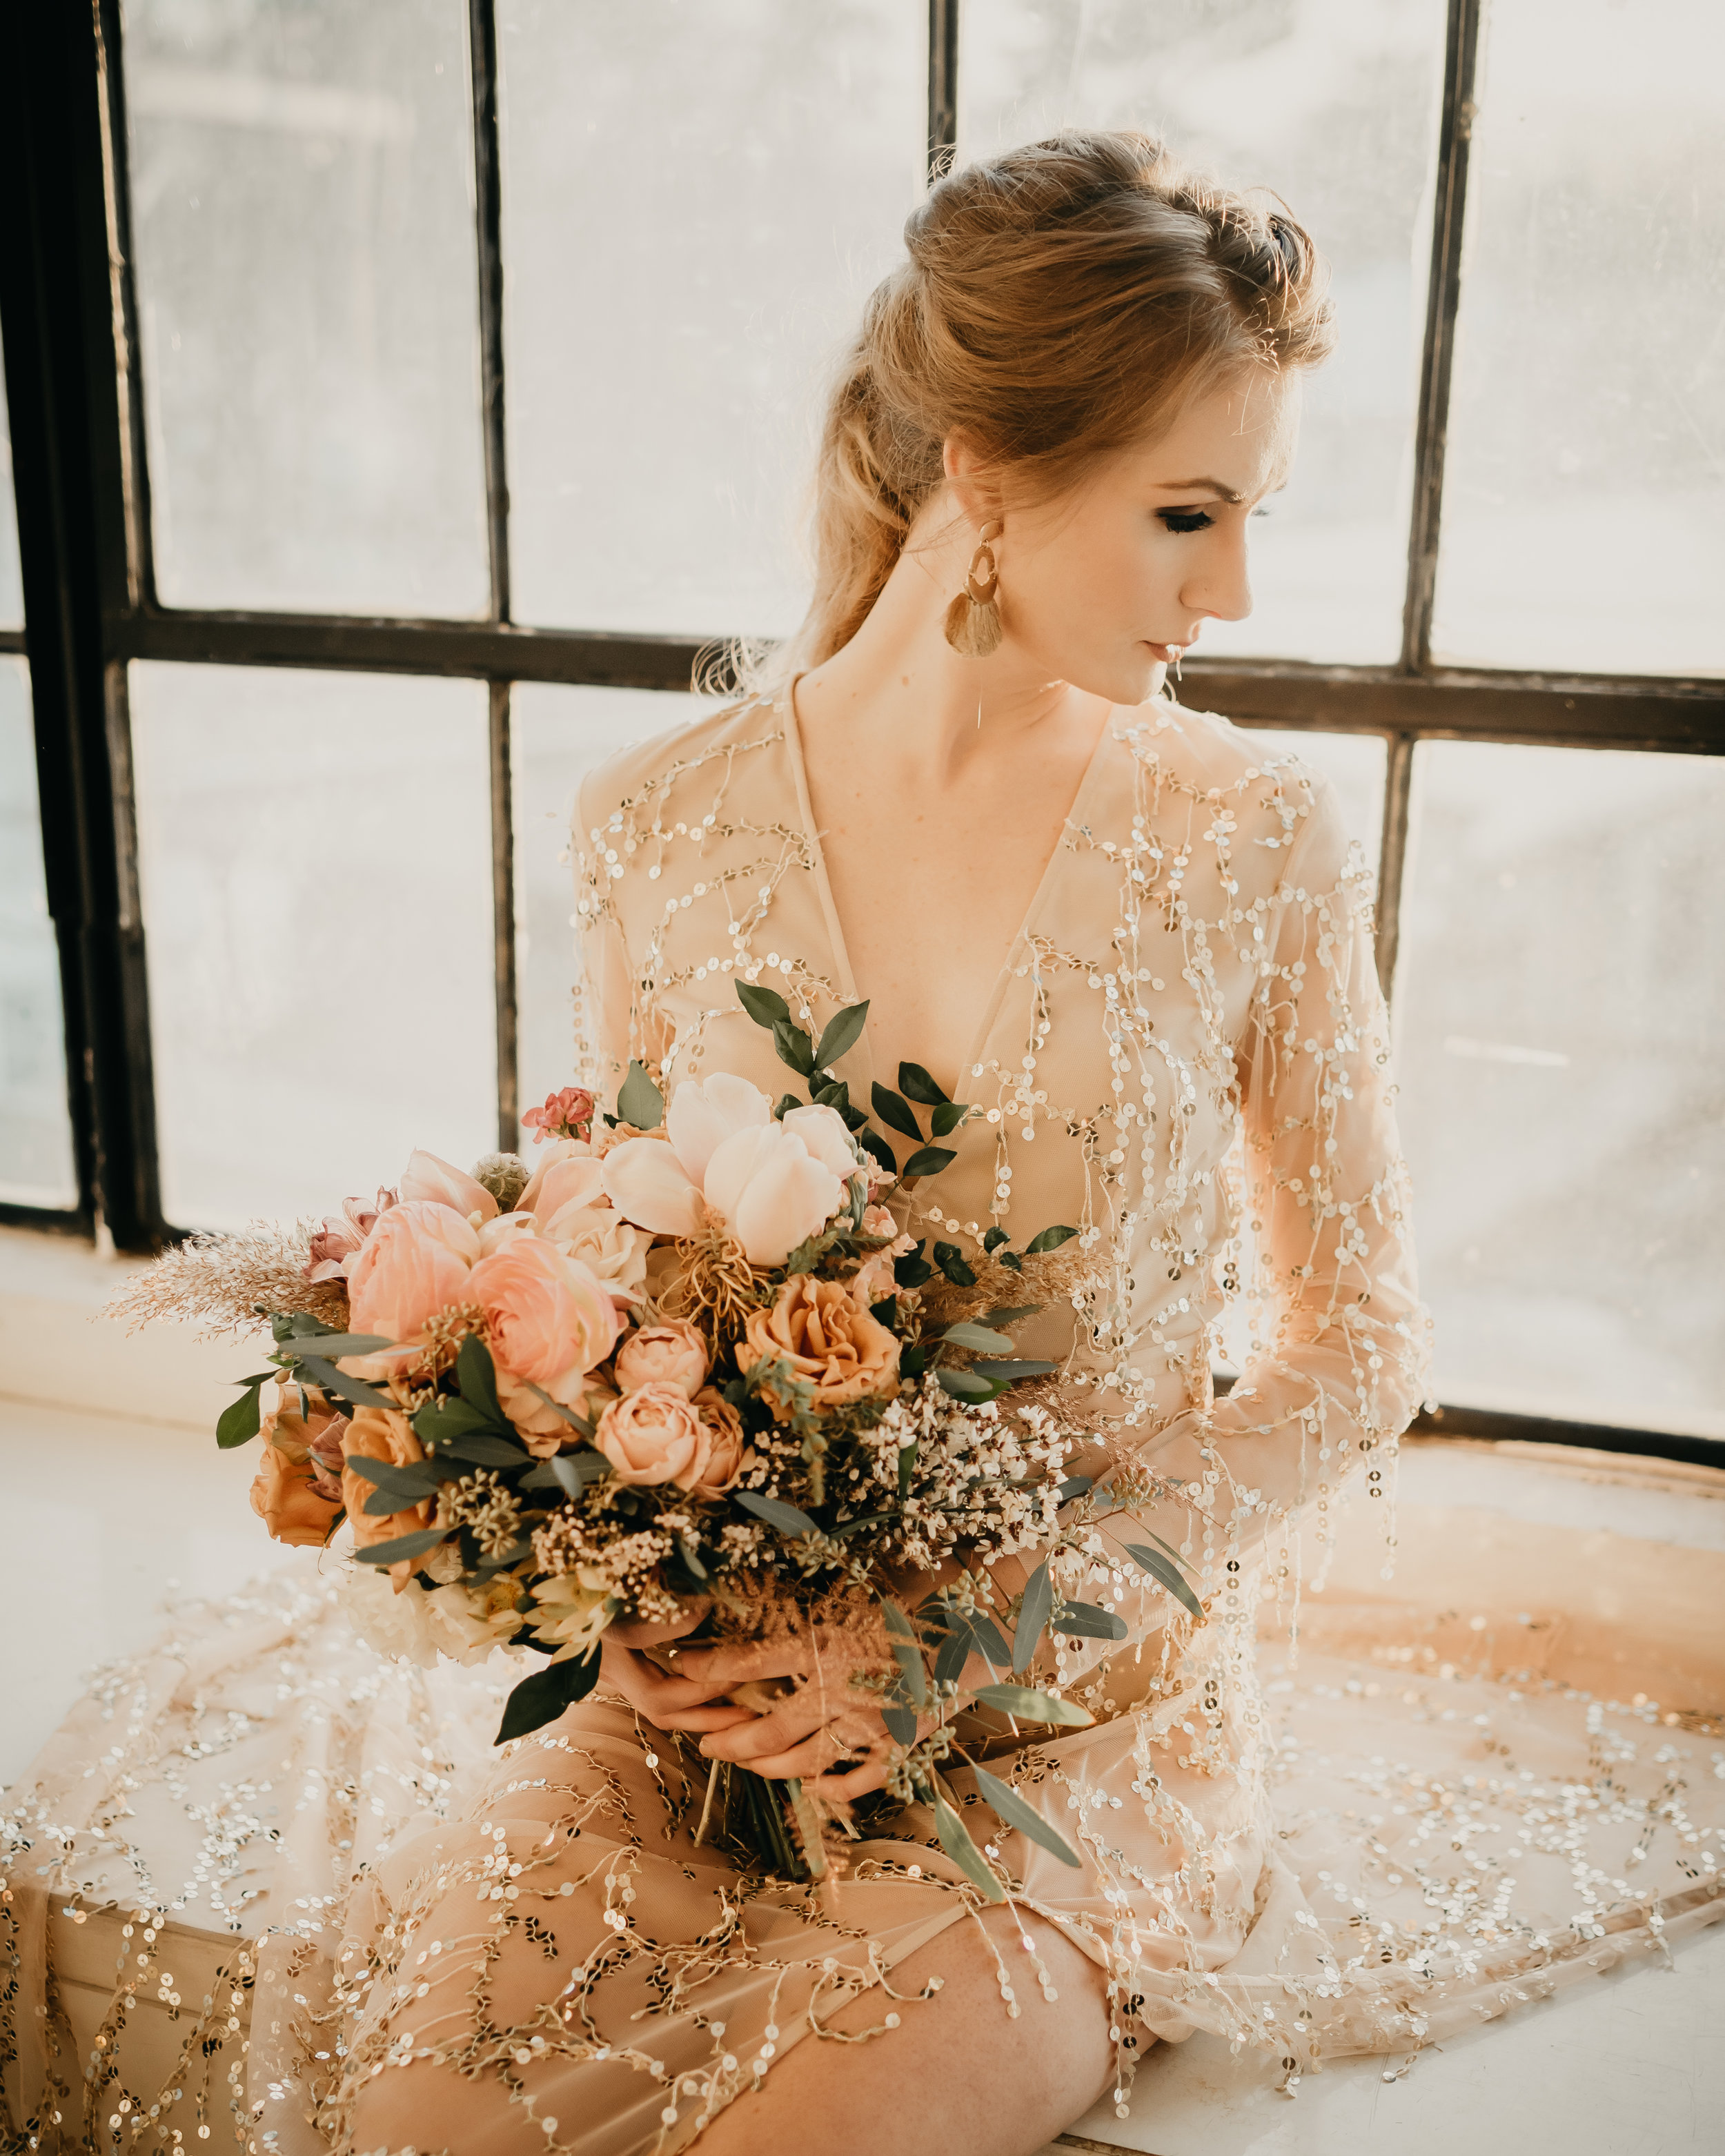 Neutral colored wedding with a sequins dress and full bridal bouquet - Pearl Weddings & Events